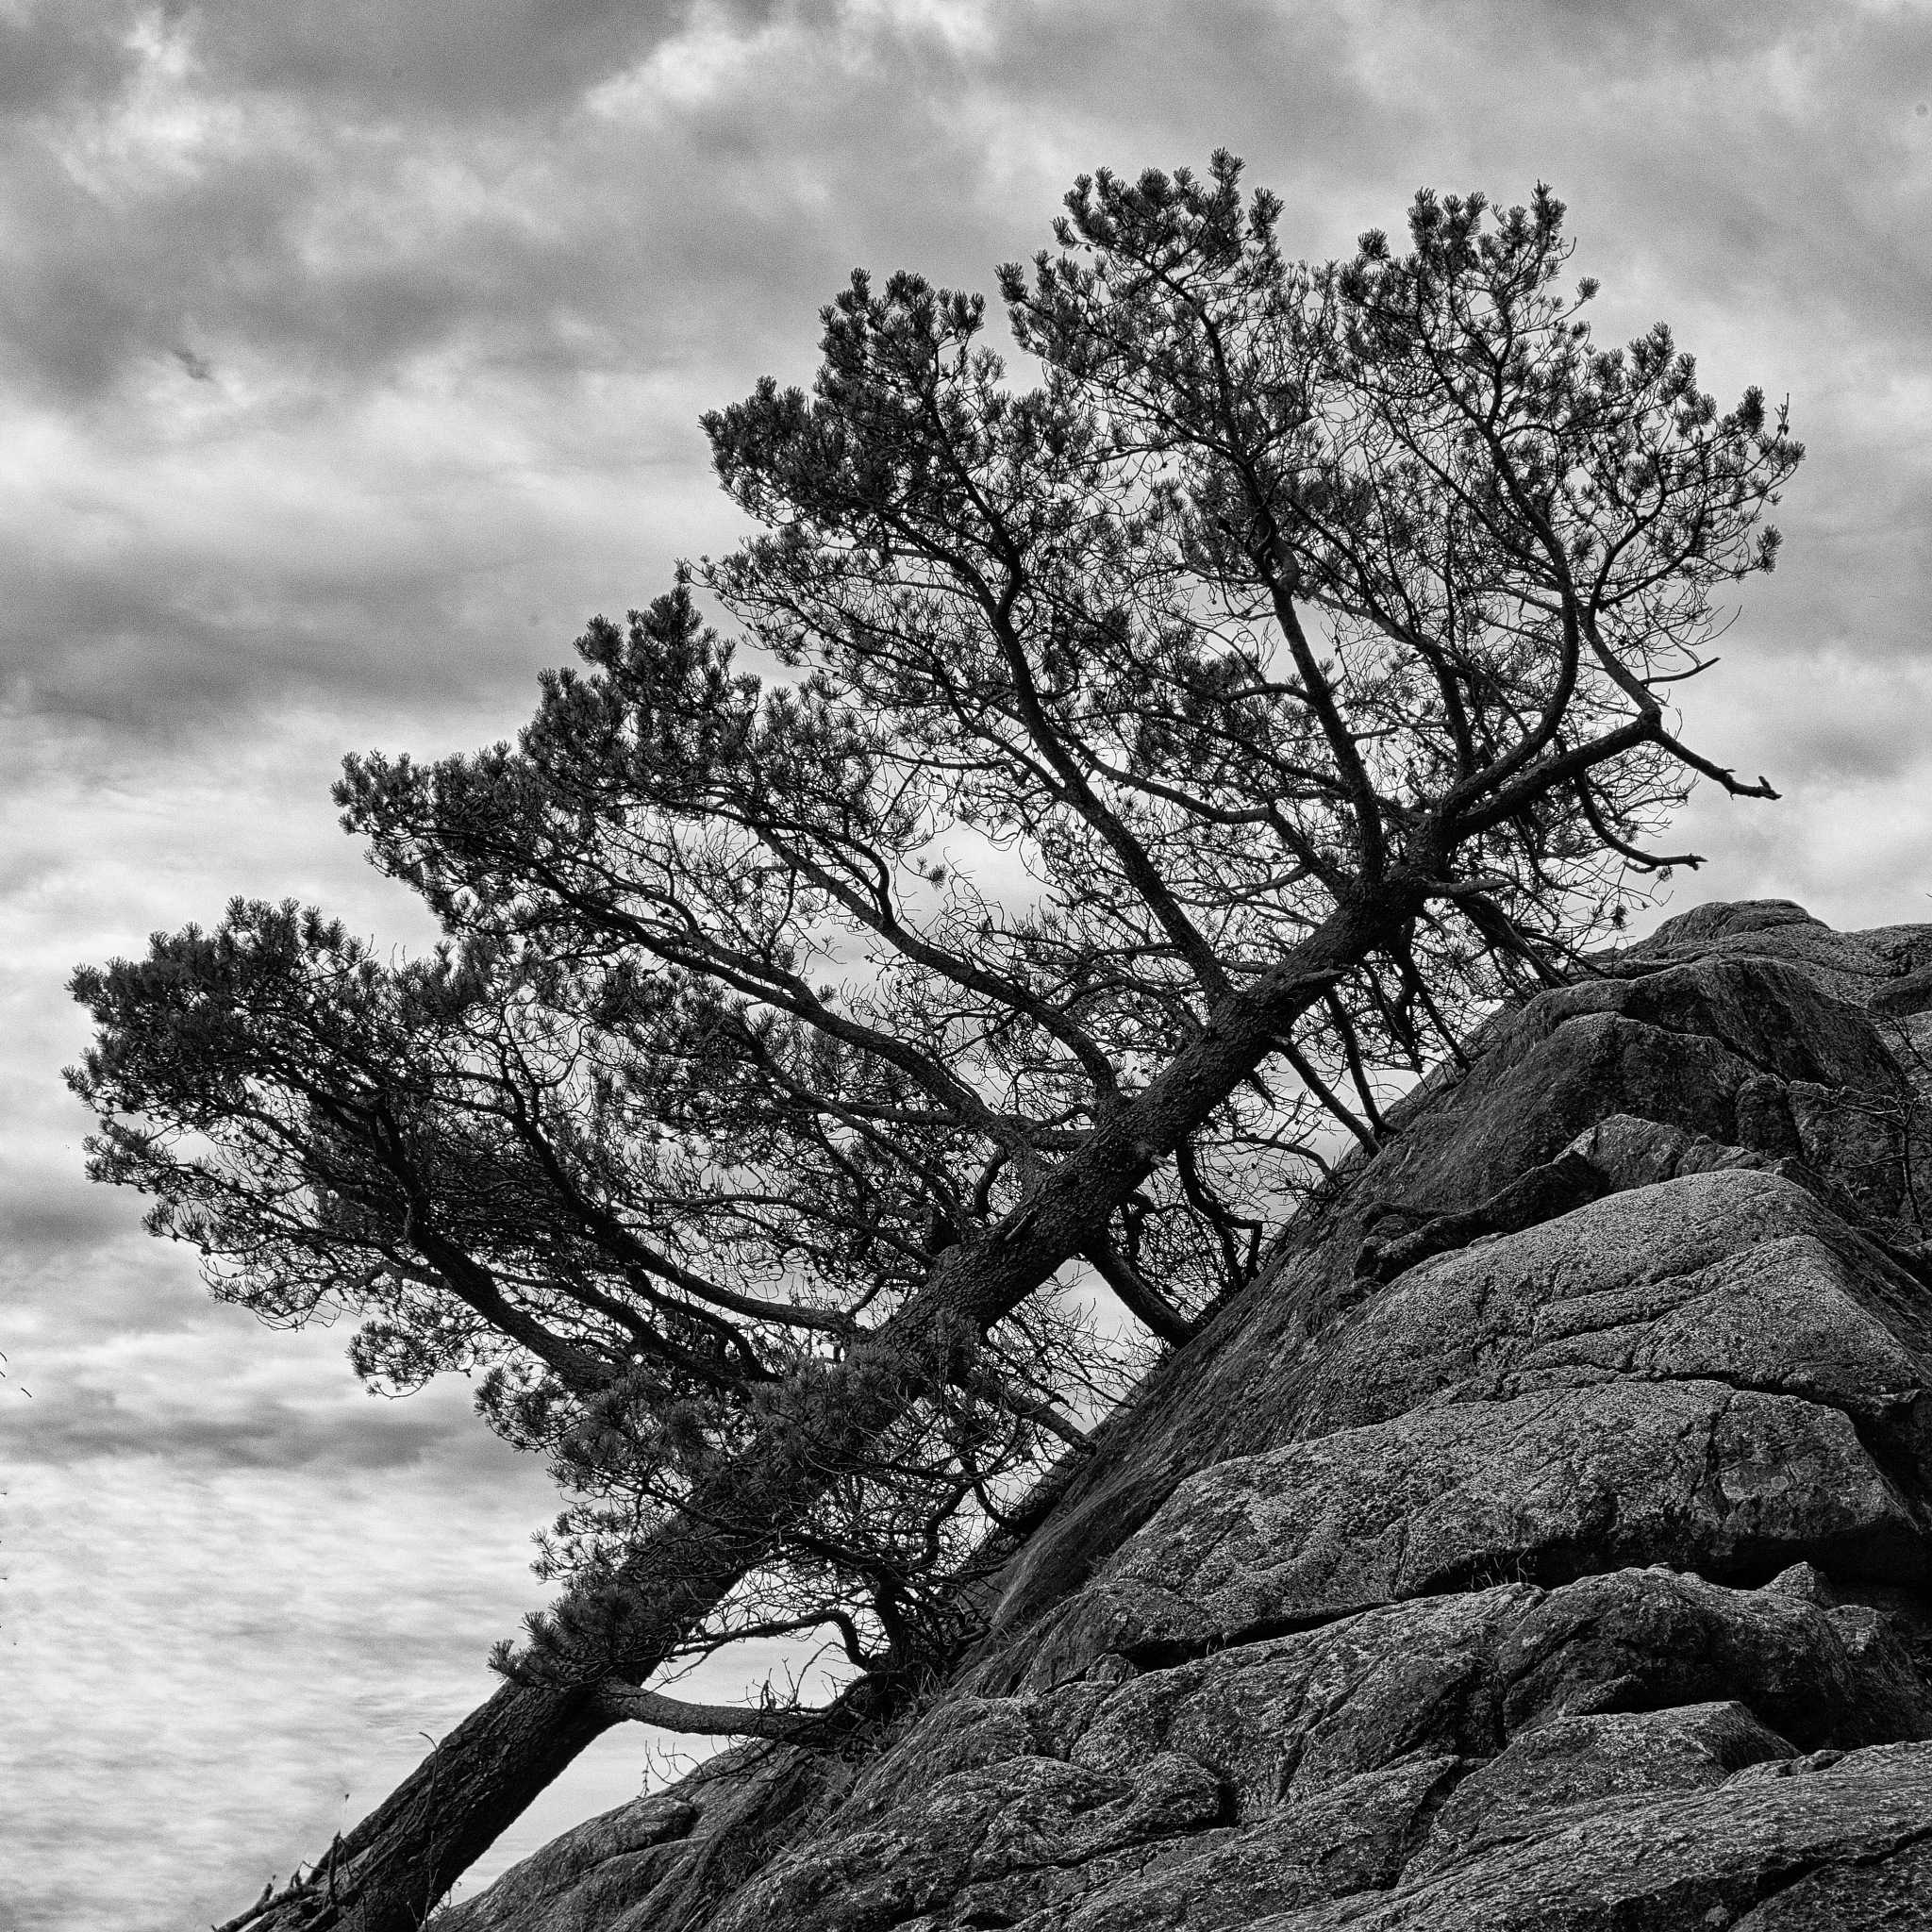 Leaning tree by Greg Mullaly